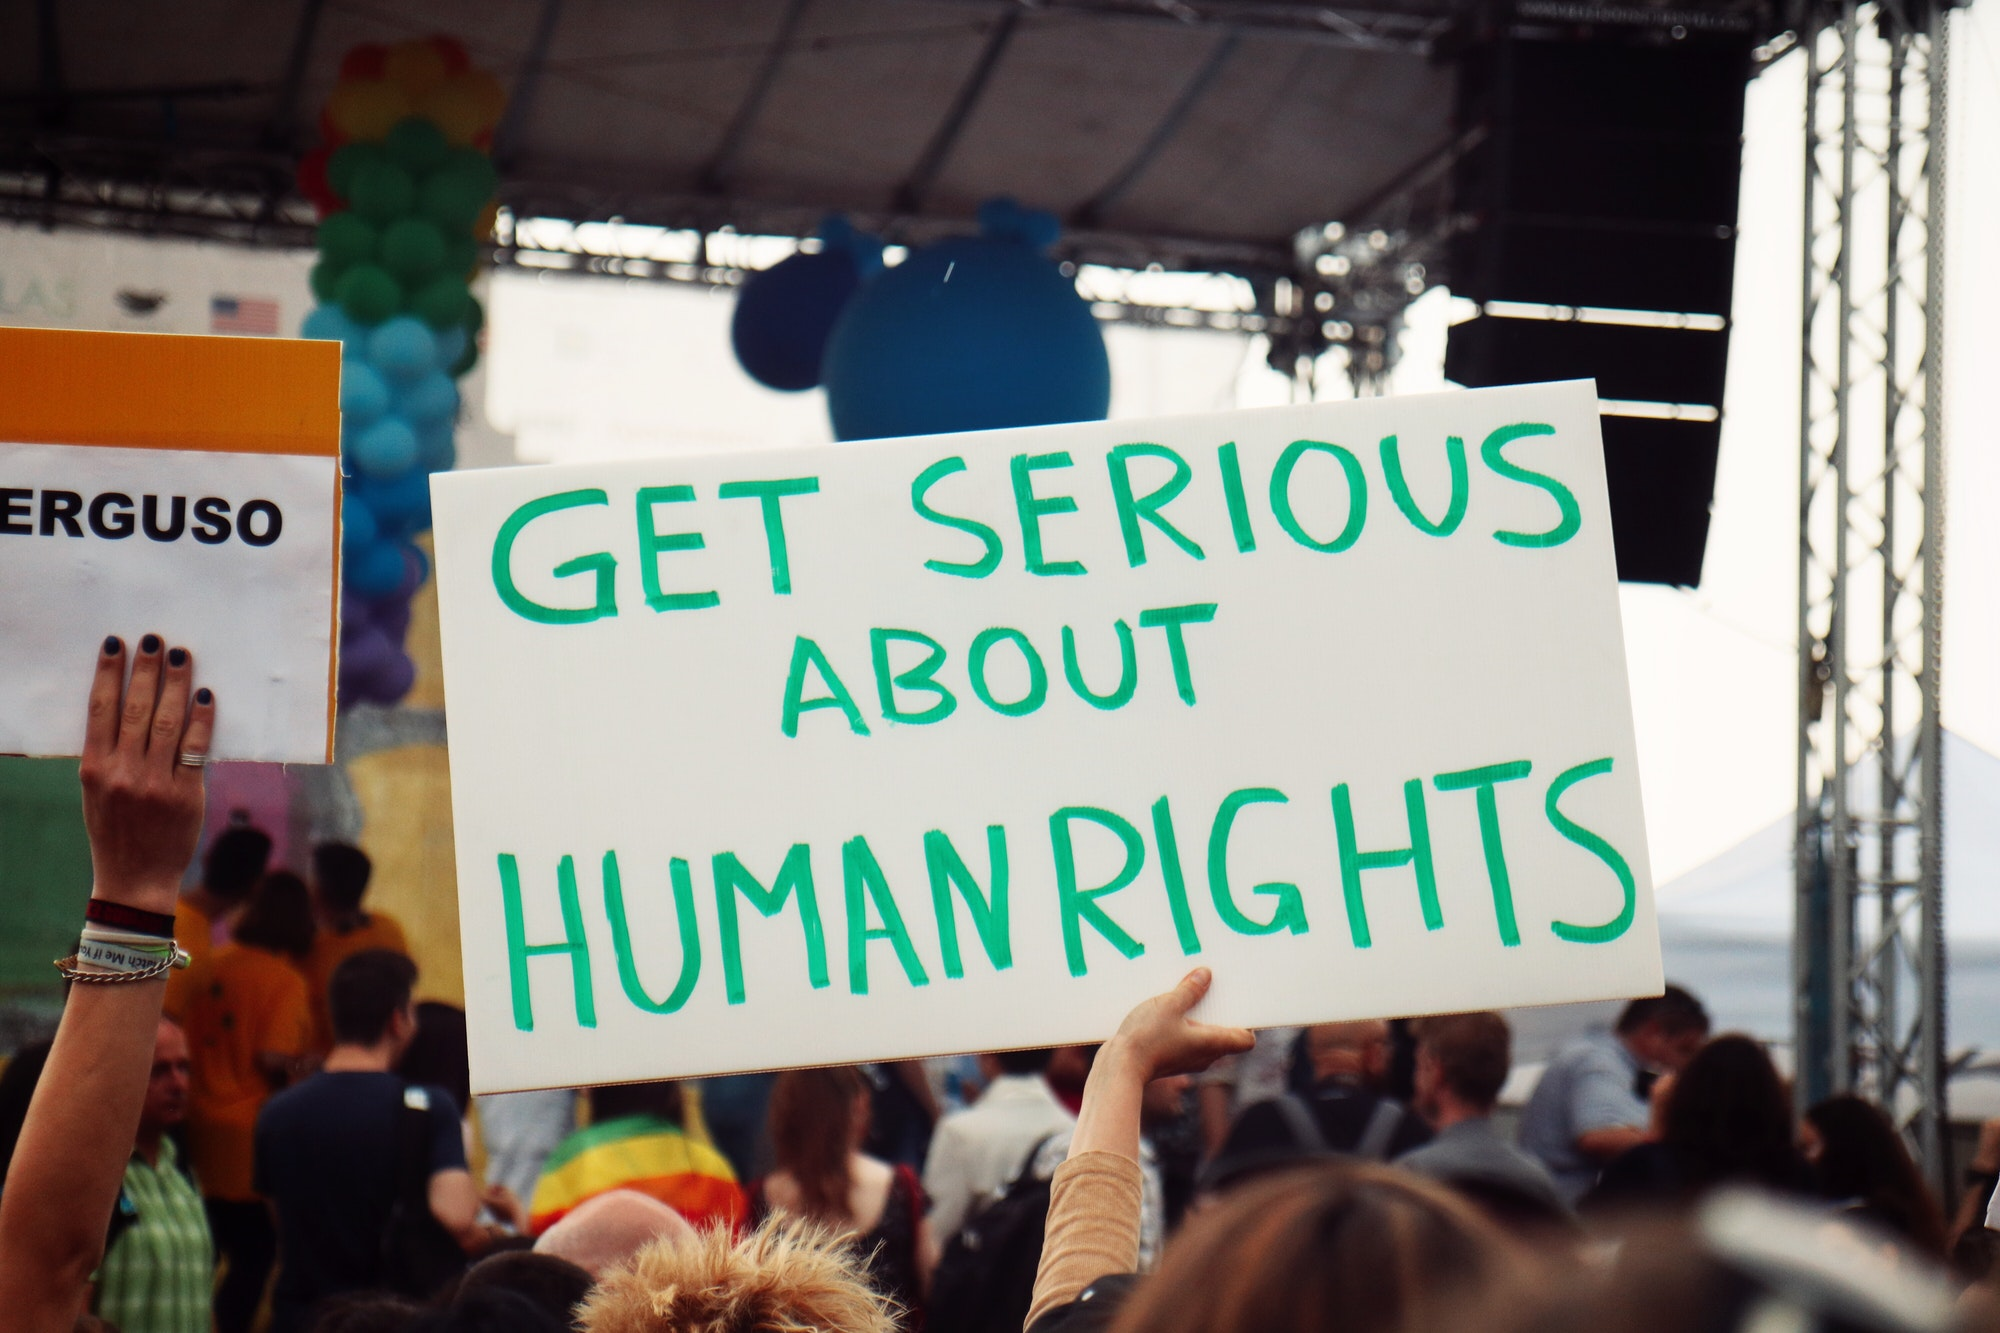 Get serious about human rights